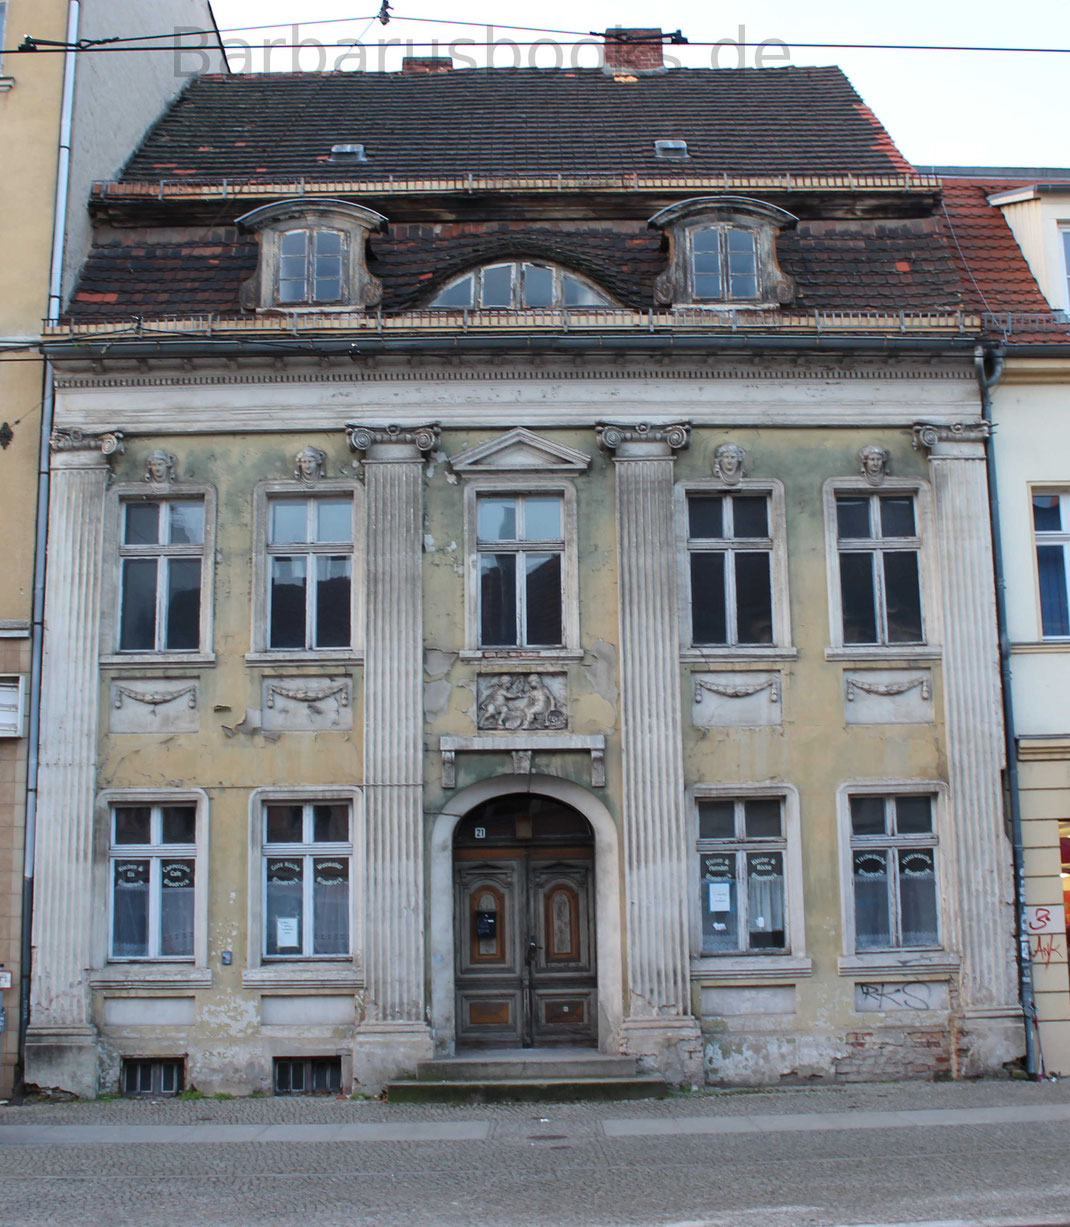 Haus in Brandenburg an der Havel